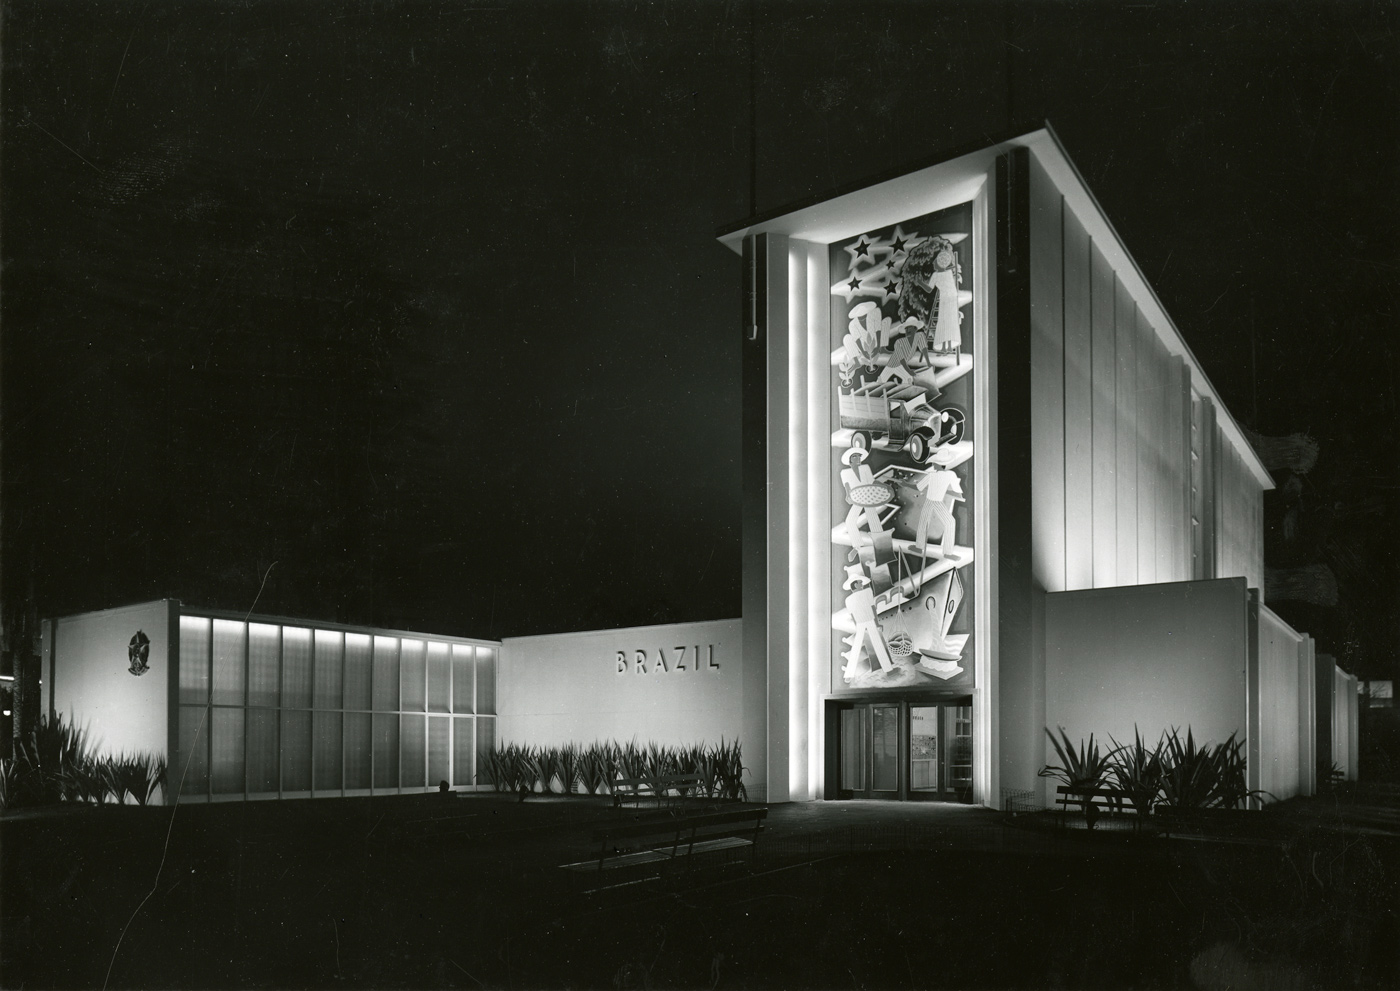 Brazil Building at the Golden Gate International Exhibition